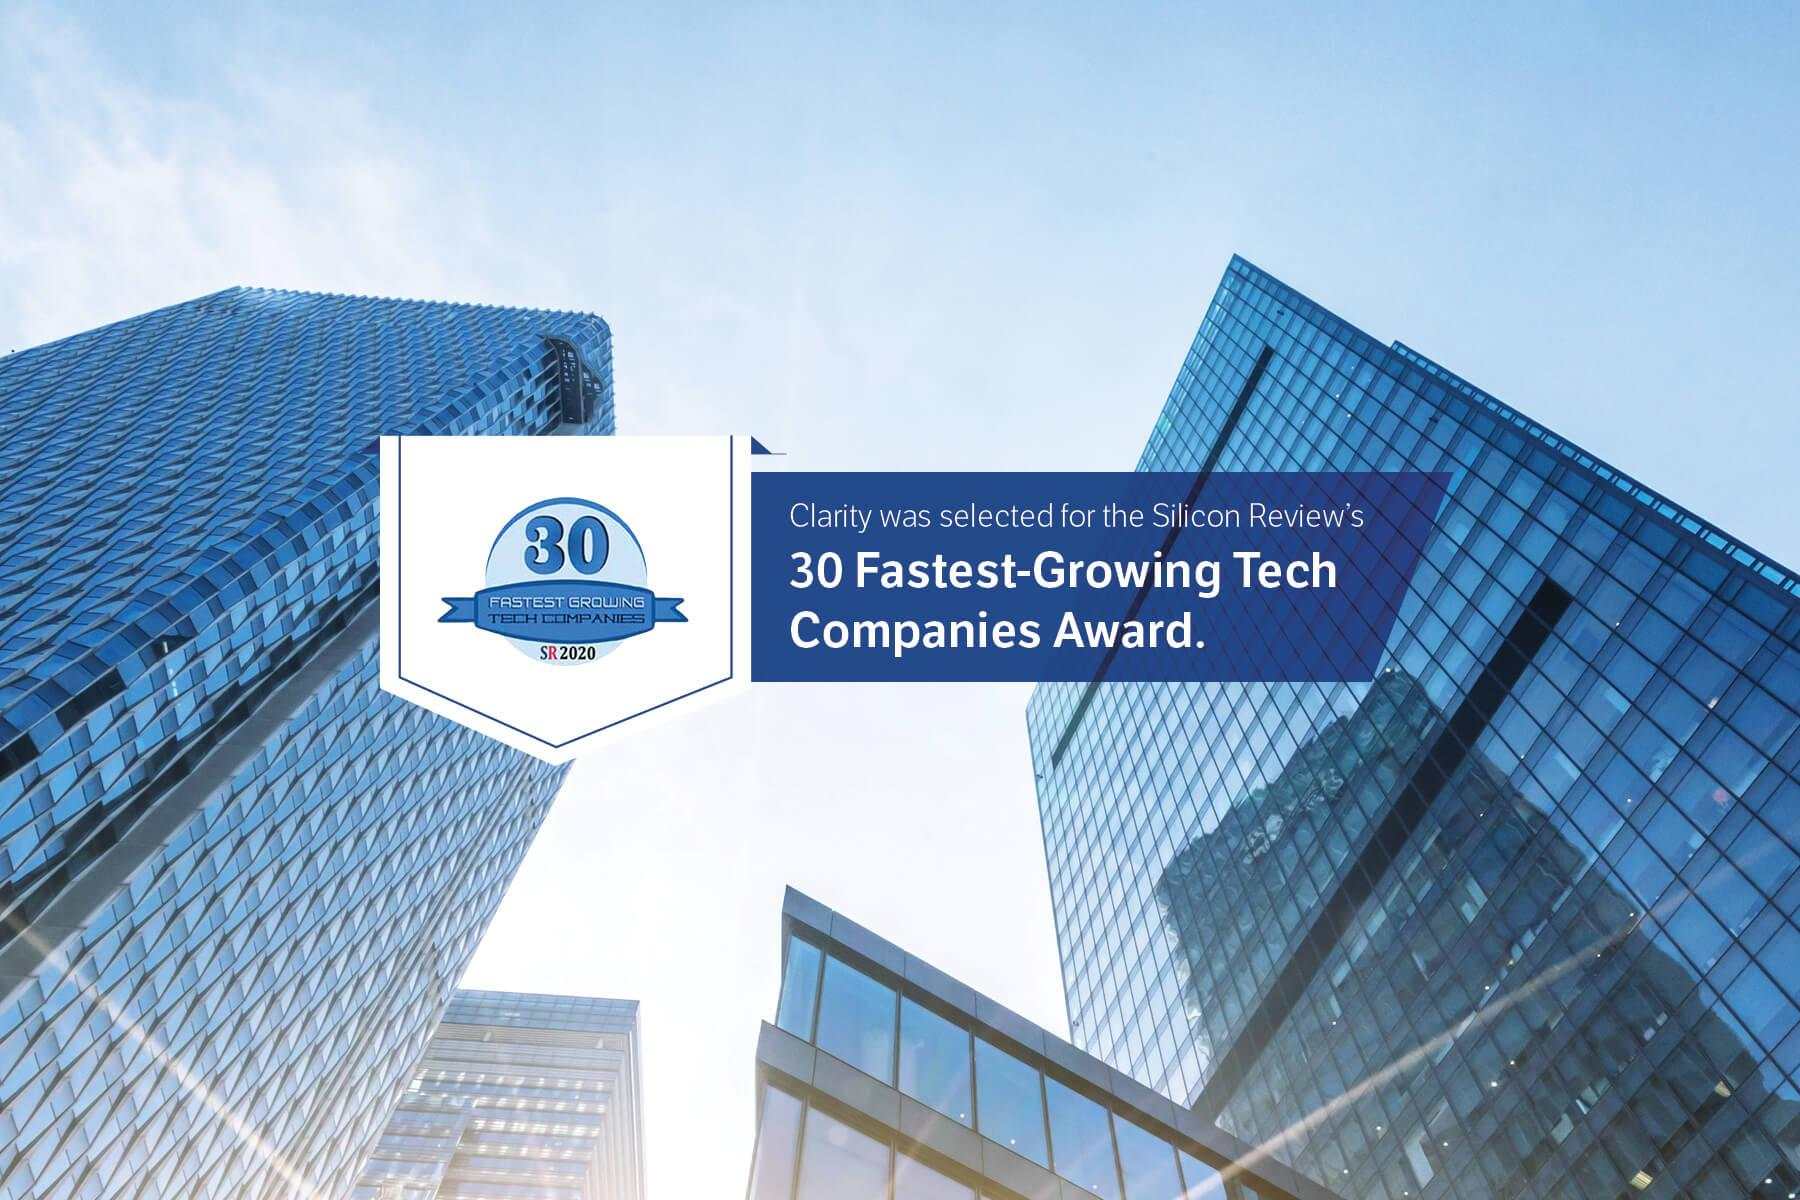 30 Fastest Growing Companies Award